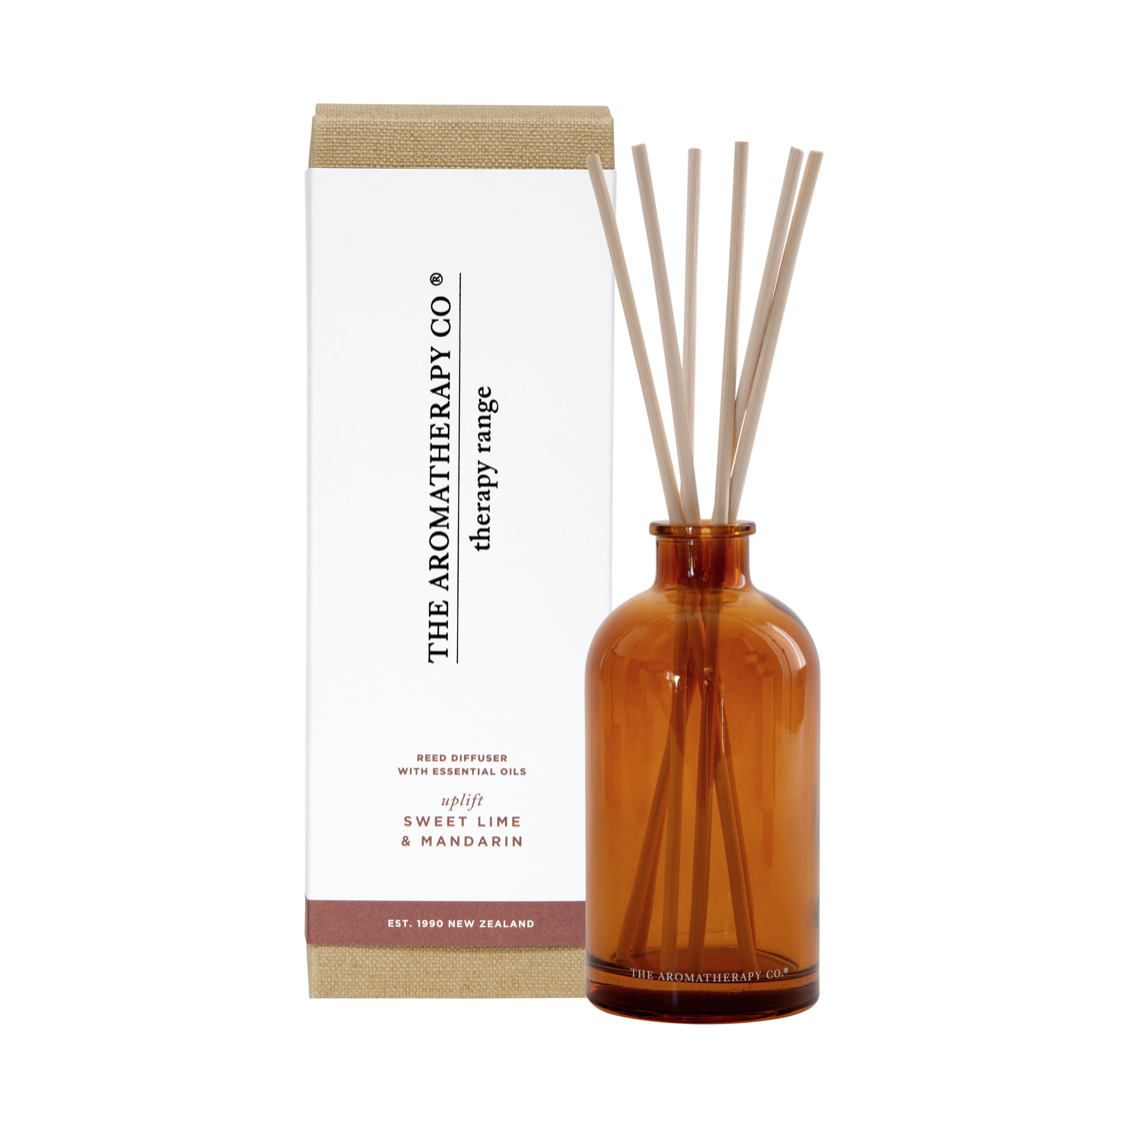 THERAPY DIFFUSER - UPLIFT - SWEET LIME & MANDARIN